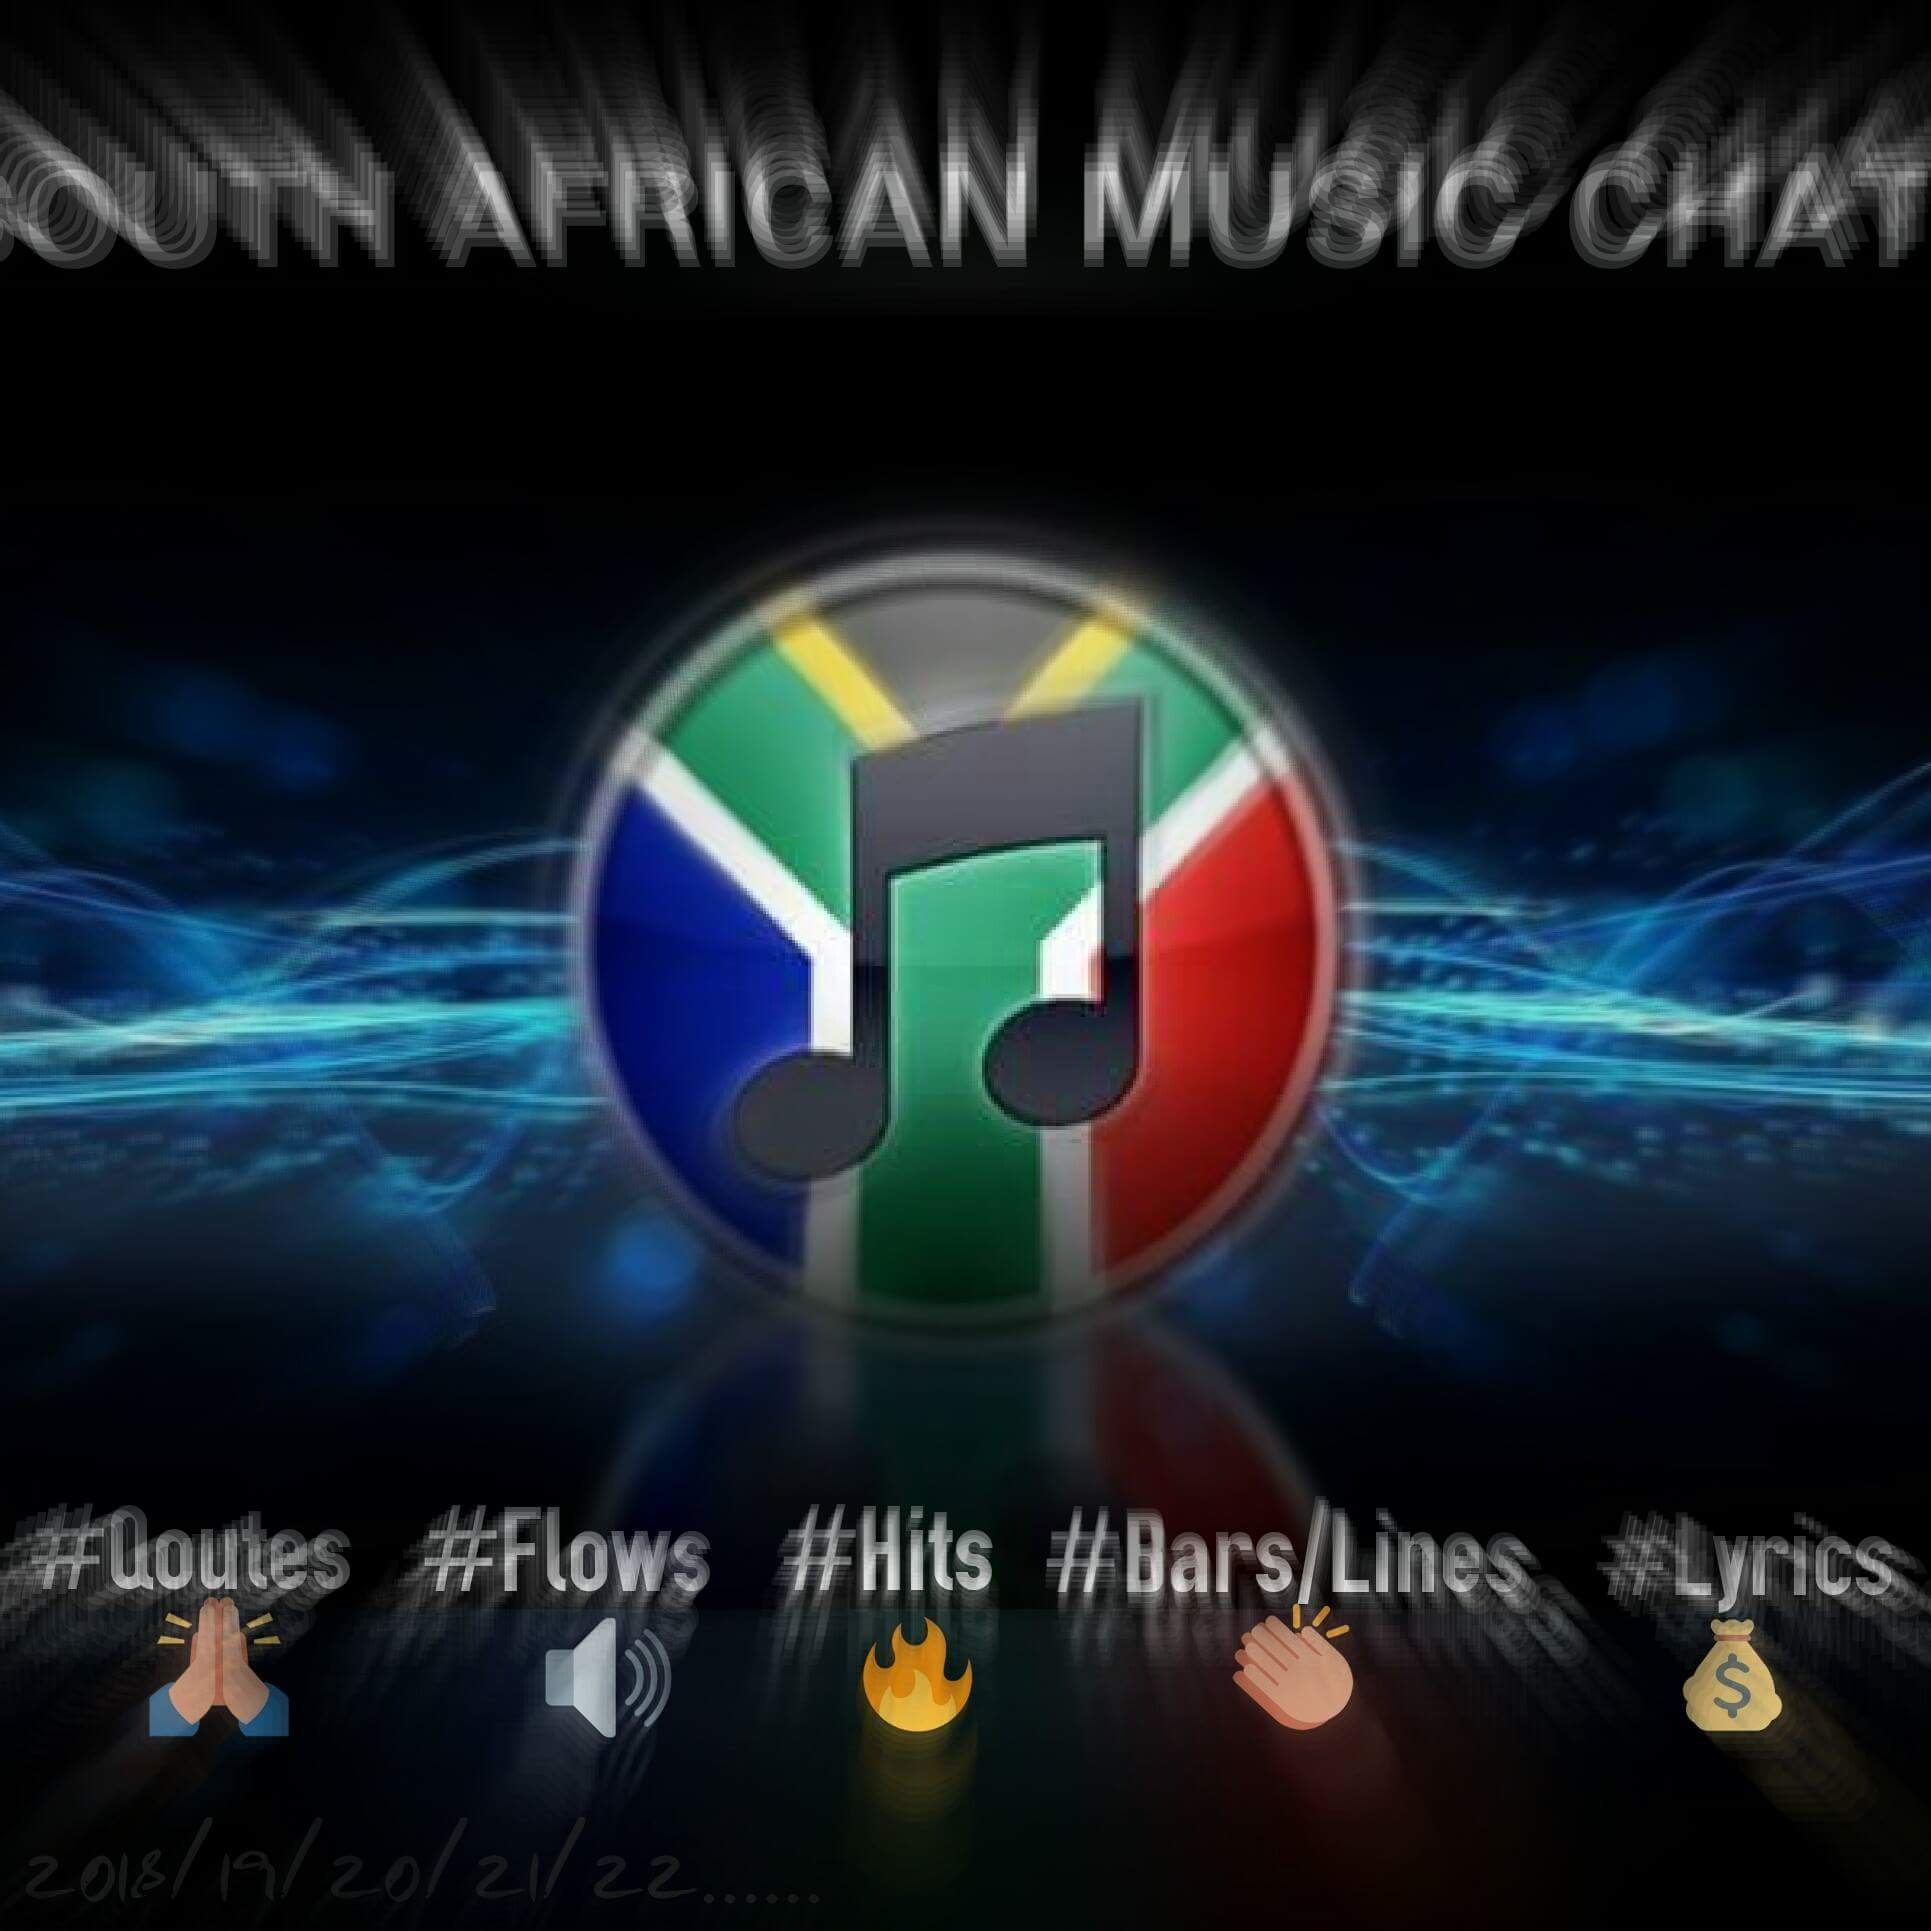 Best site to download south african music.